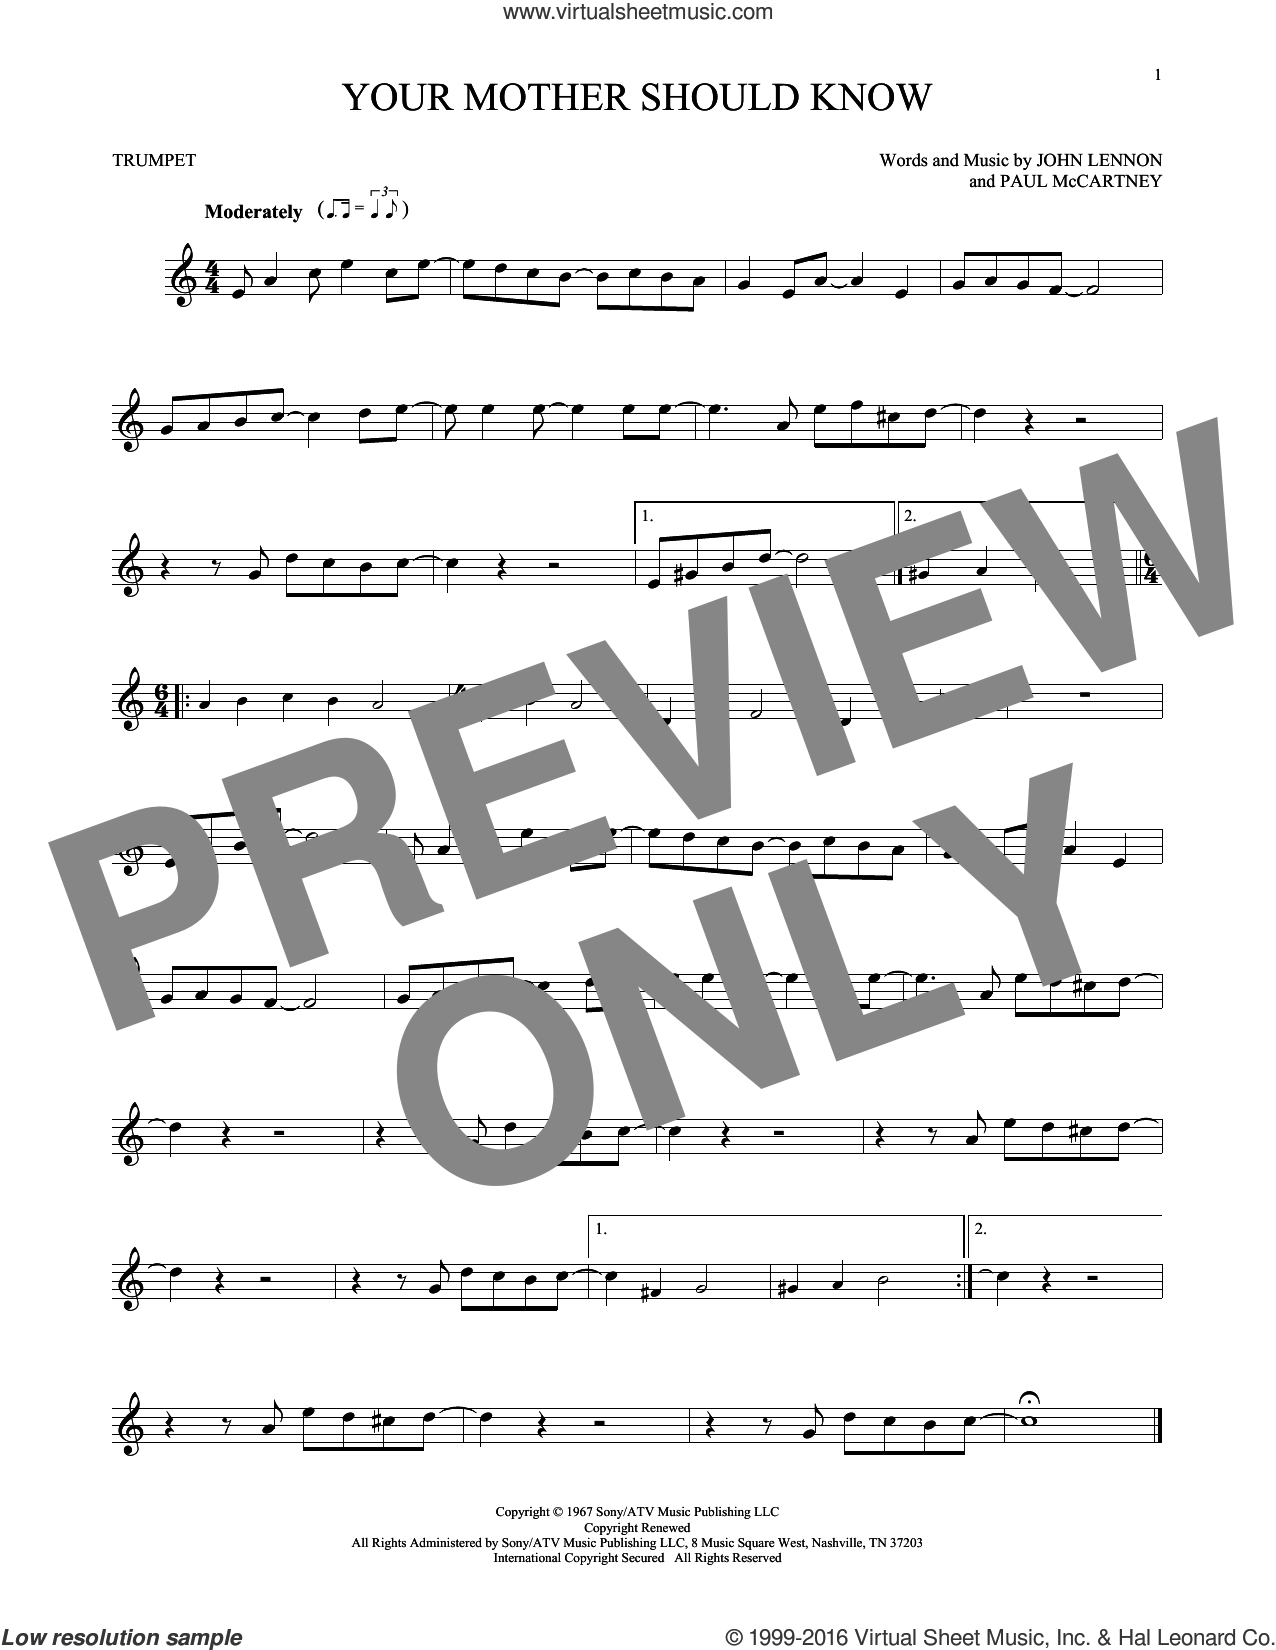 Your Mother Should Know sheet music for trumpet solo by The Beatles, John Lennon and Paul McCartney, intermediate skill level